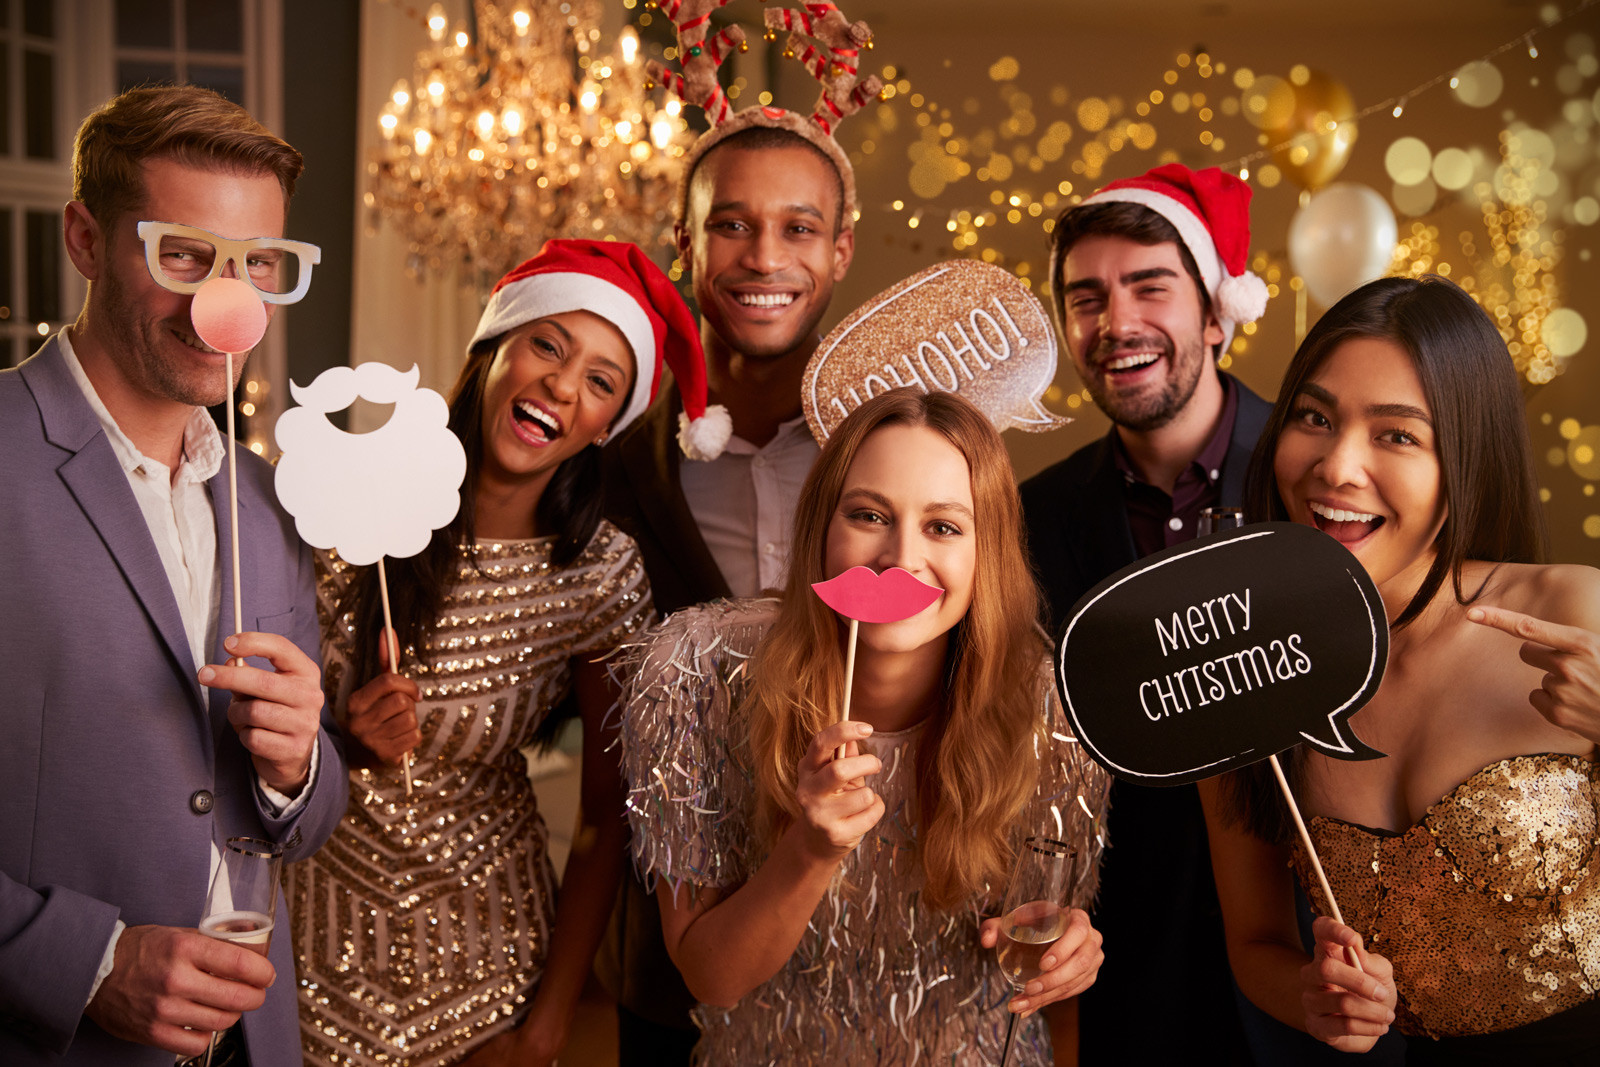 Business Christmas Party Ideas  Corporate Events 6 Tips for an Amazing Christmas Party